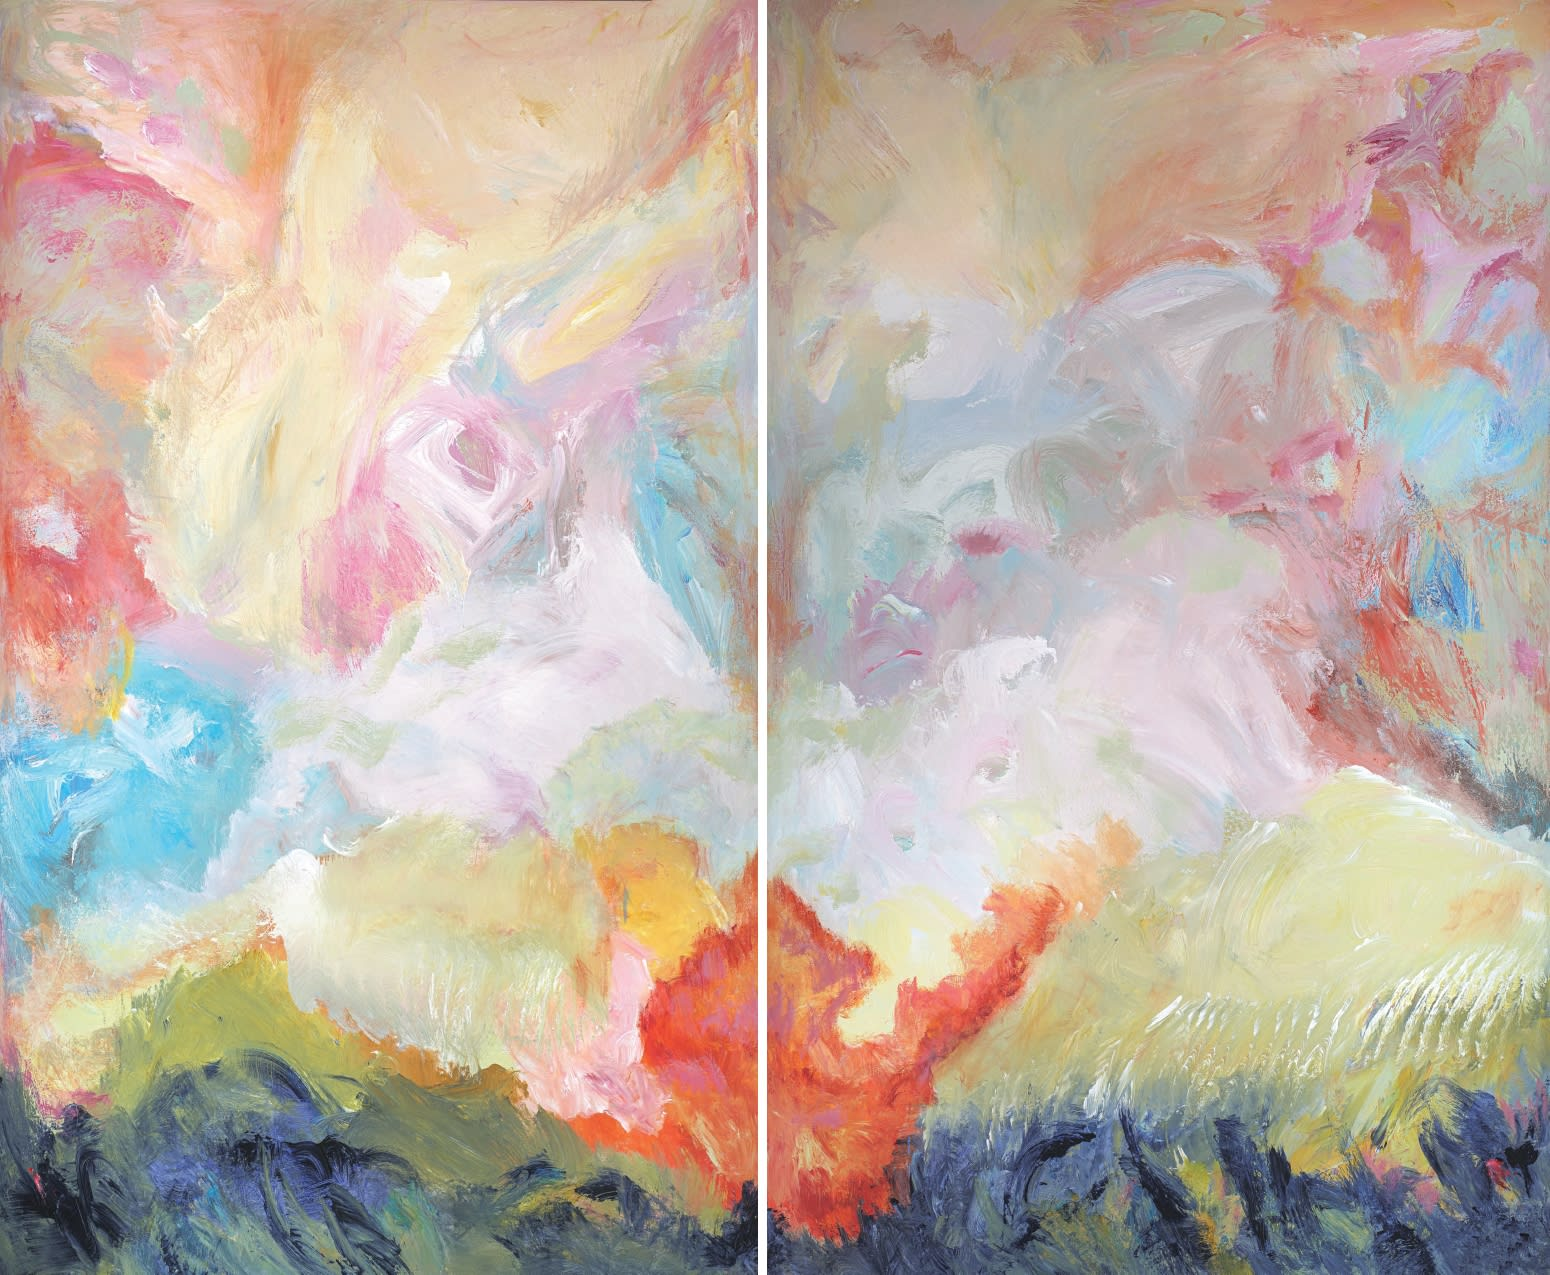 Patricia Qualls, The World is Changing (Diptych), 2020